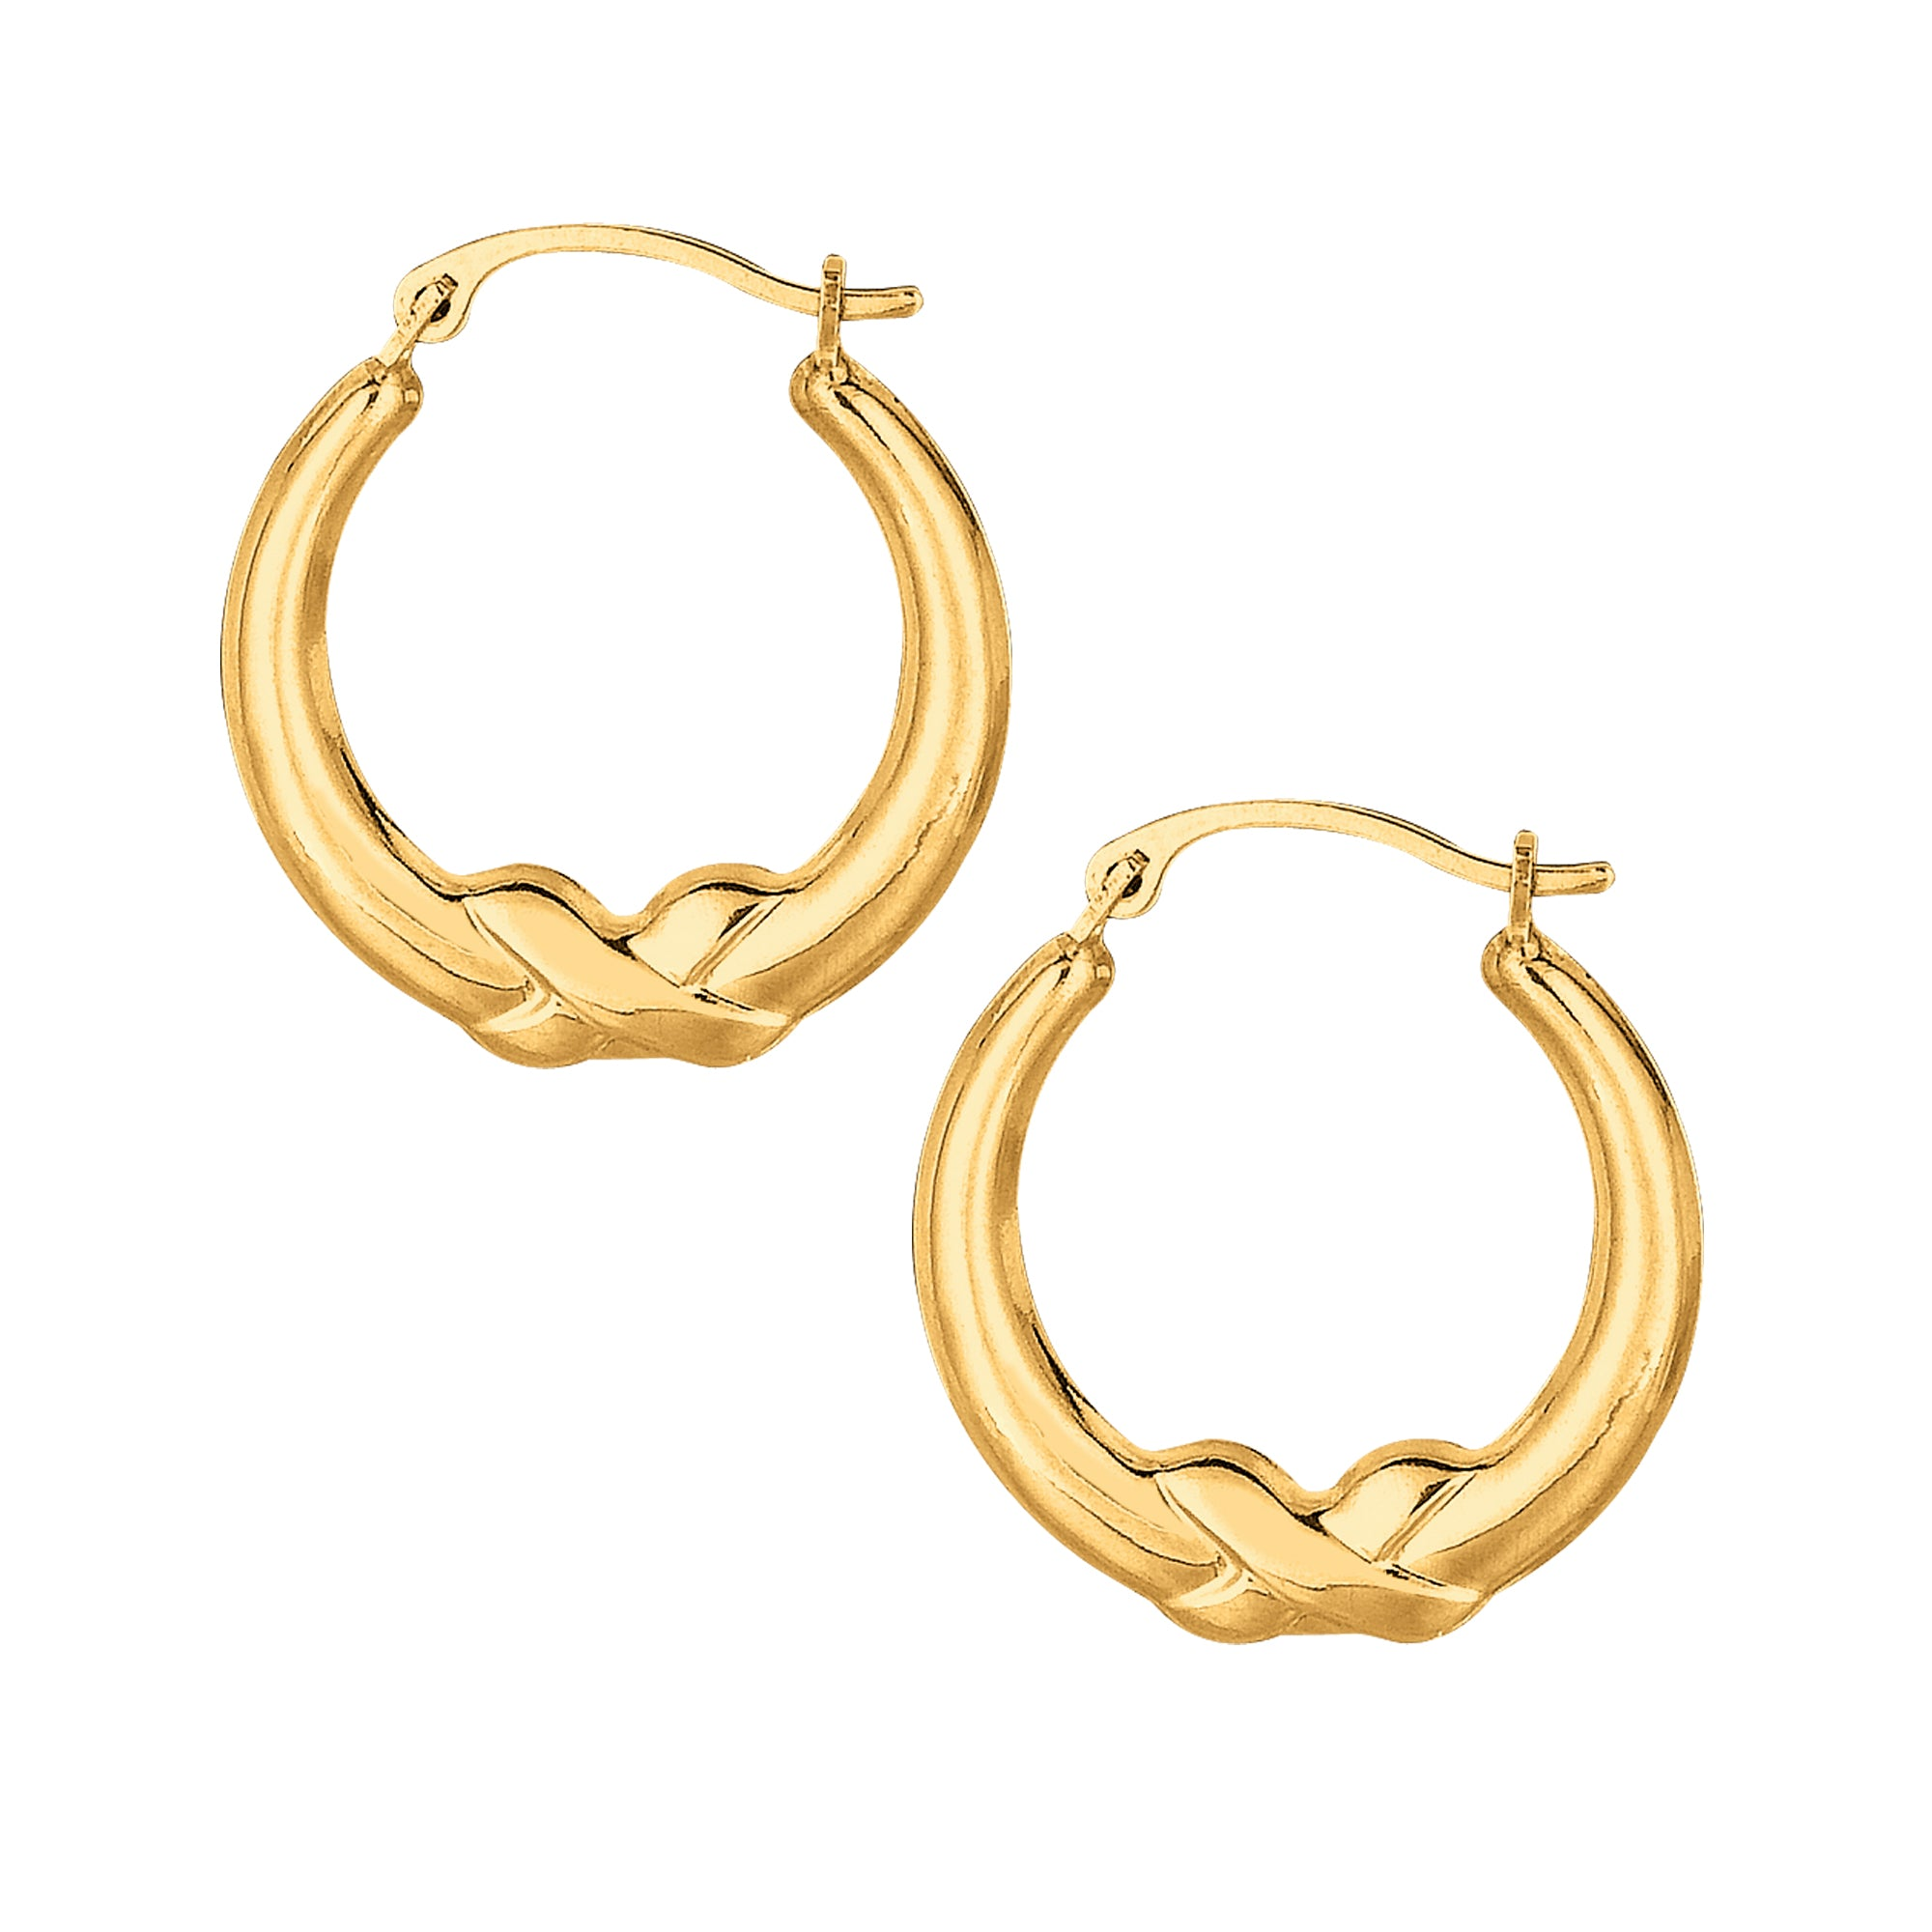 10K Gold Polished X Detail Hoop Earring